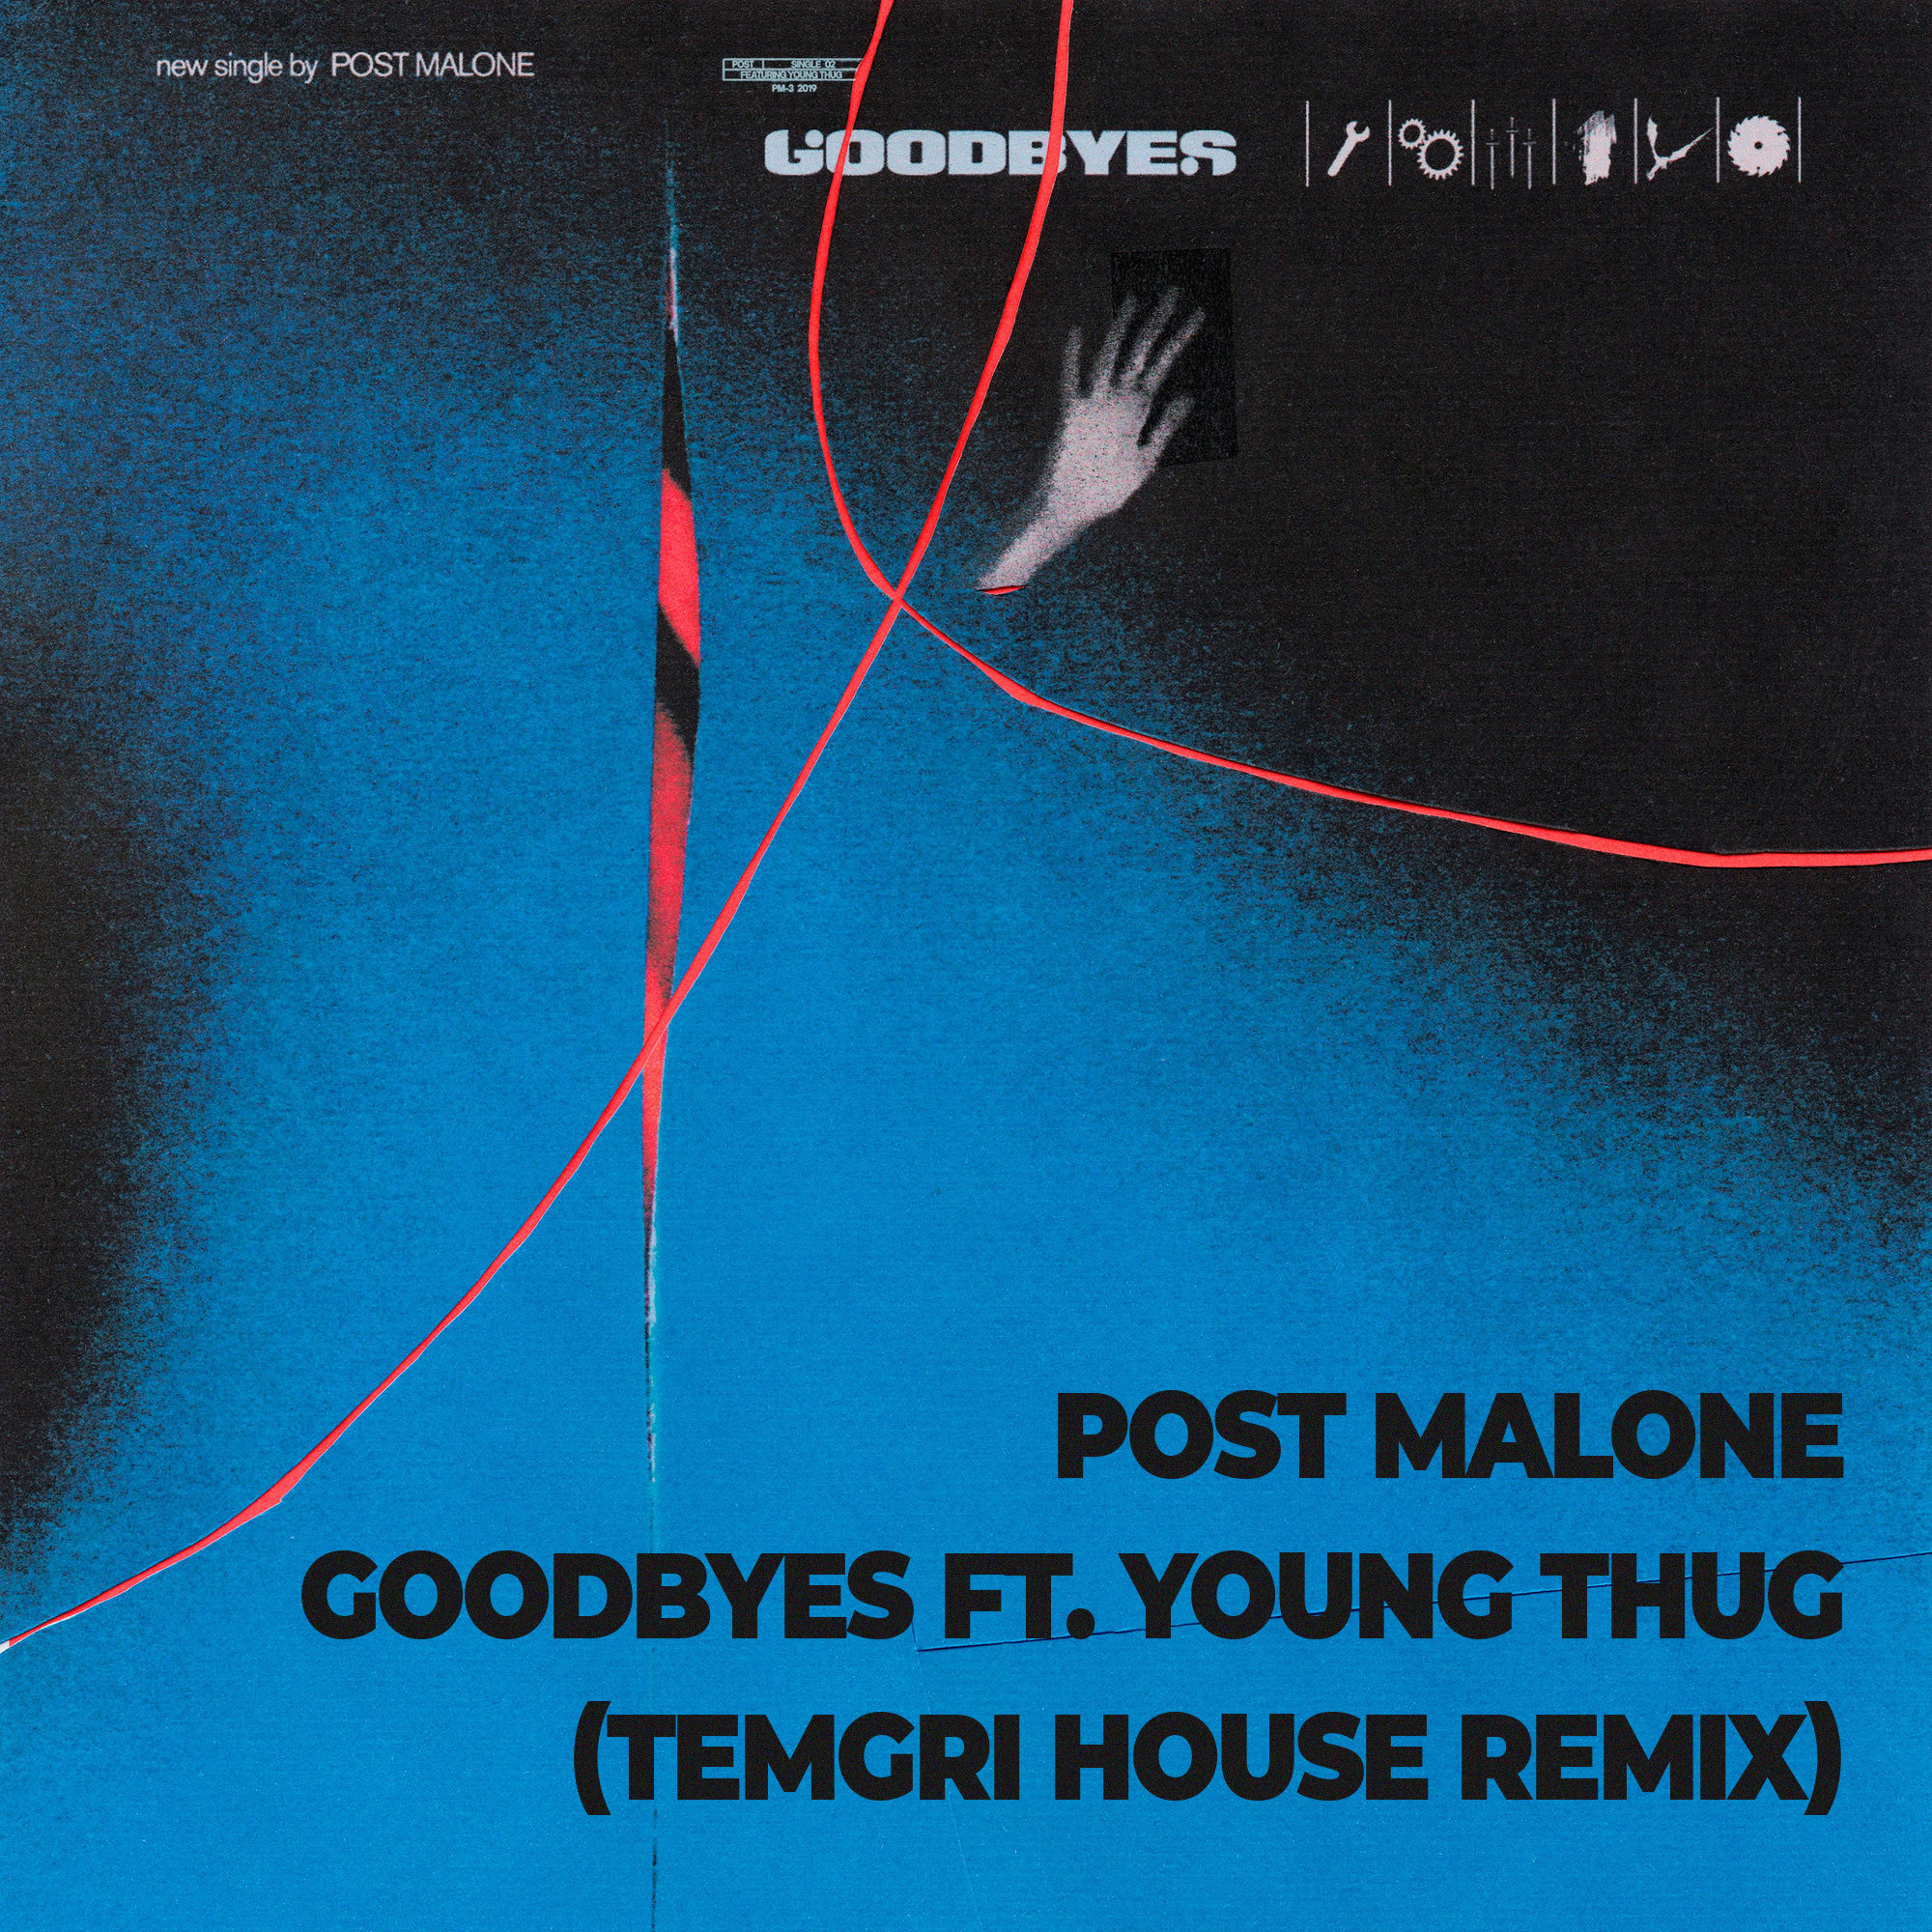 Post Malone - Goodbyes ft  Young Thug (Temgri House Remix